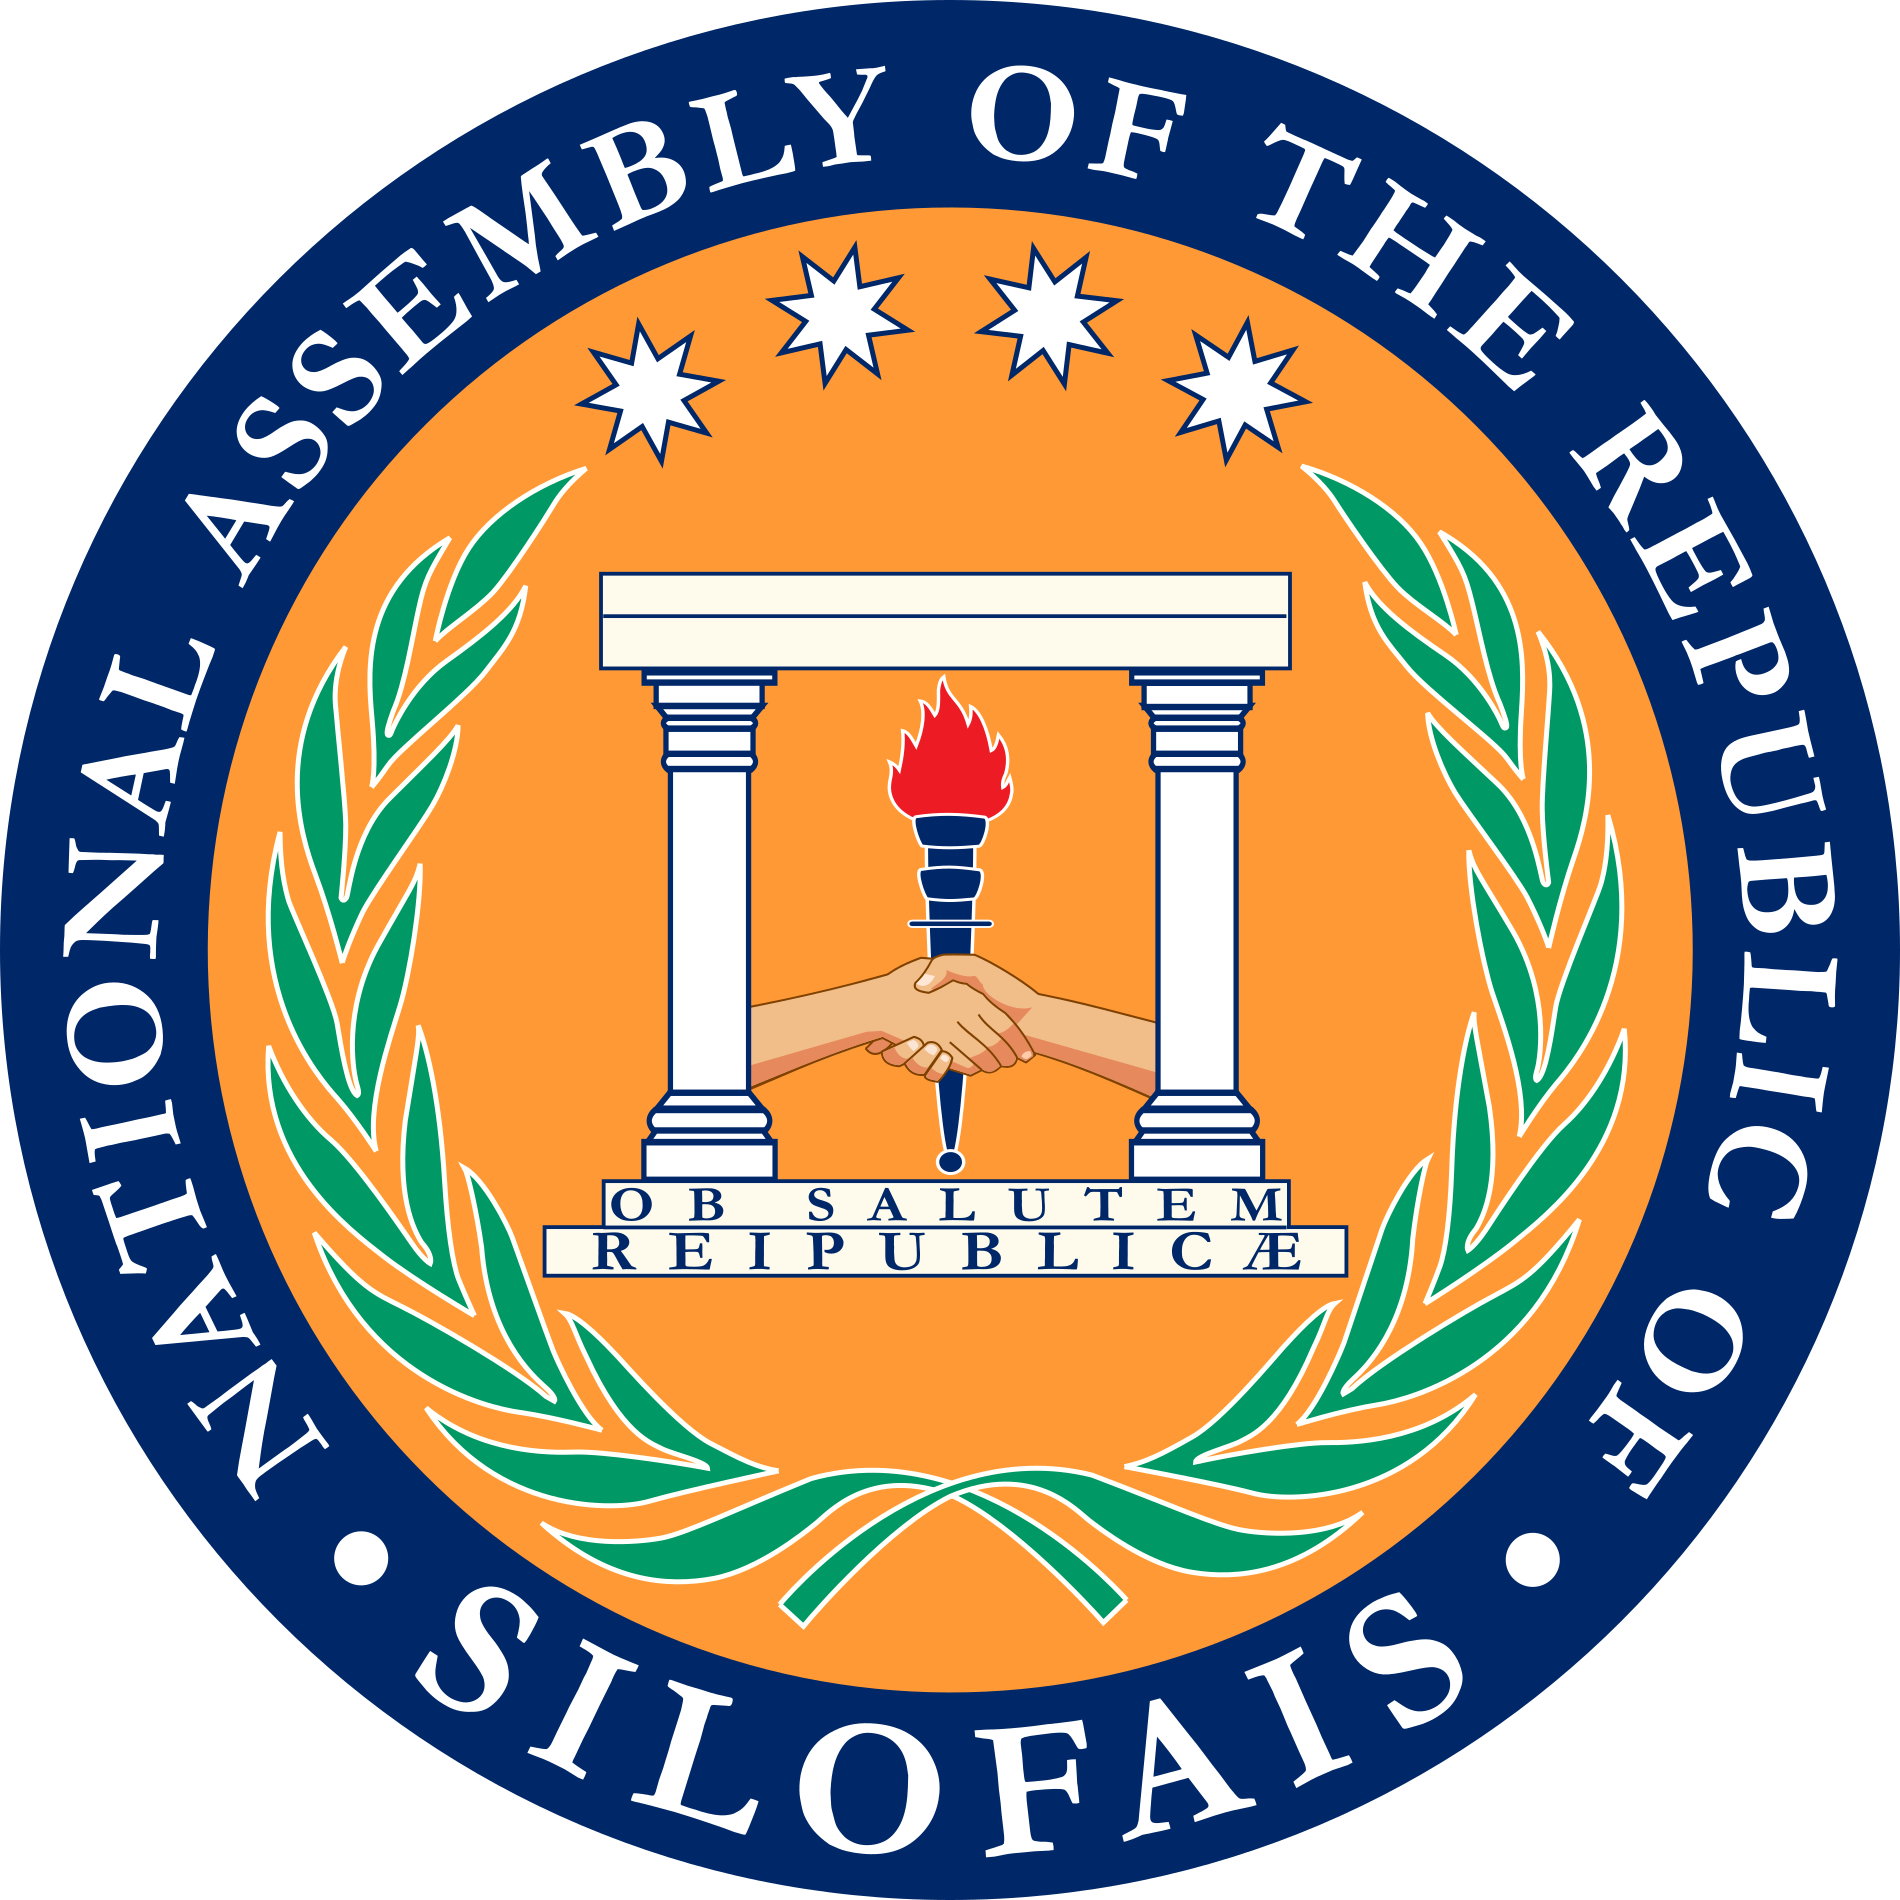 Working clipart willingness. National assembly first silofaisan